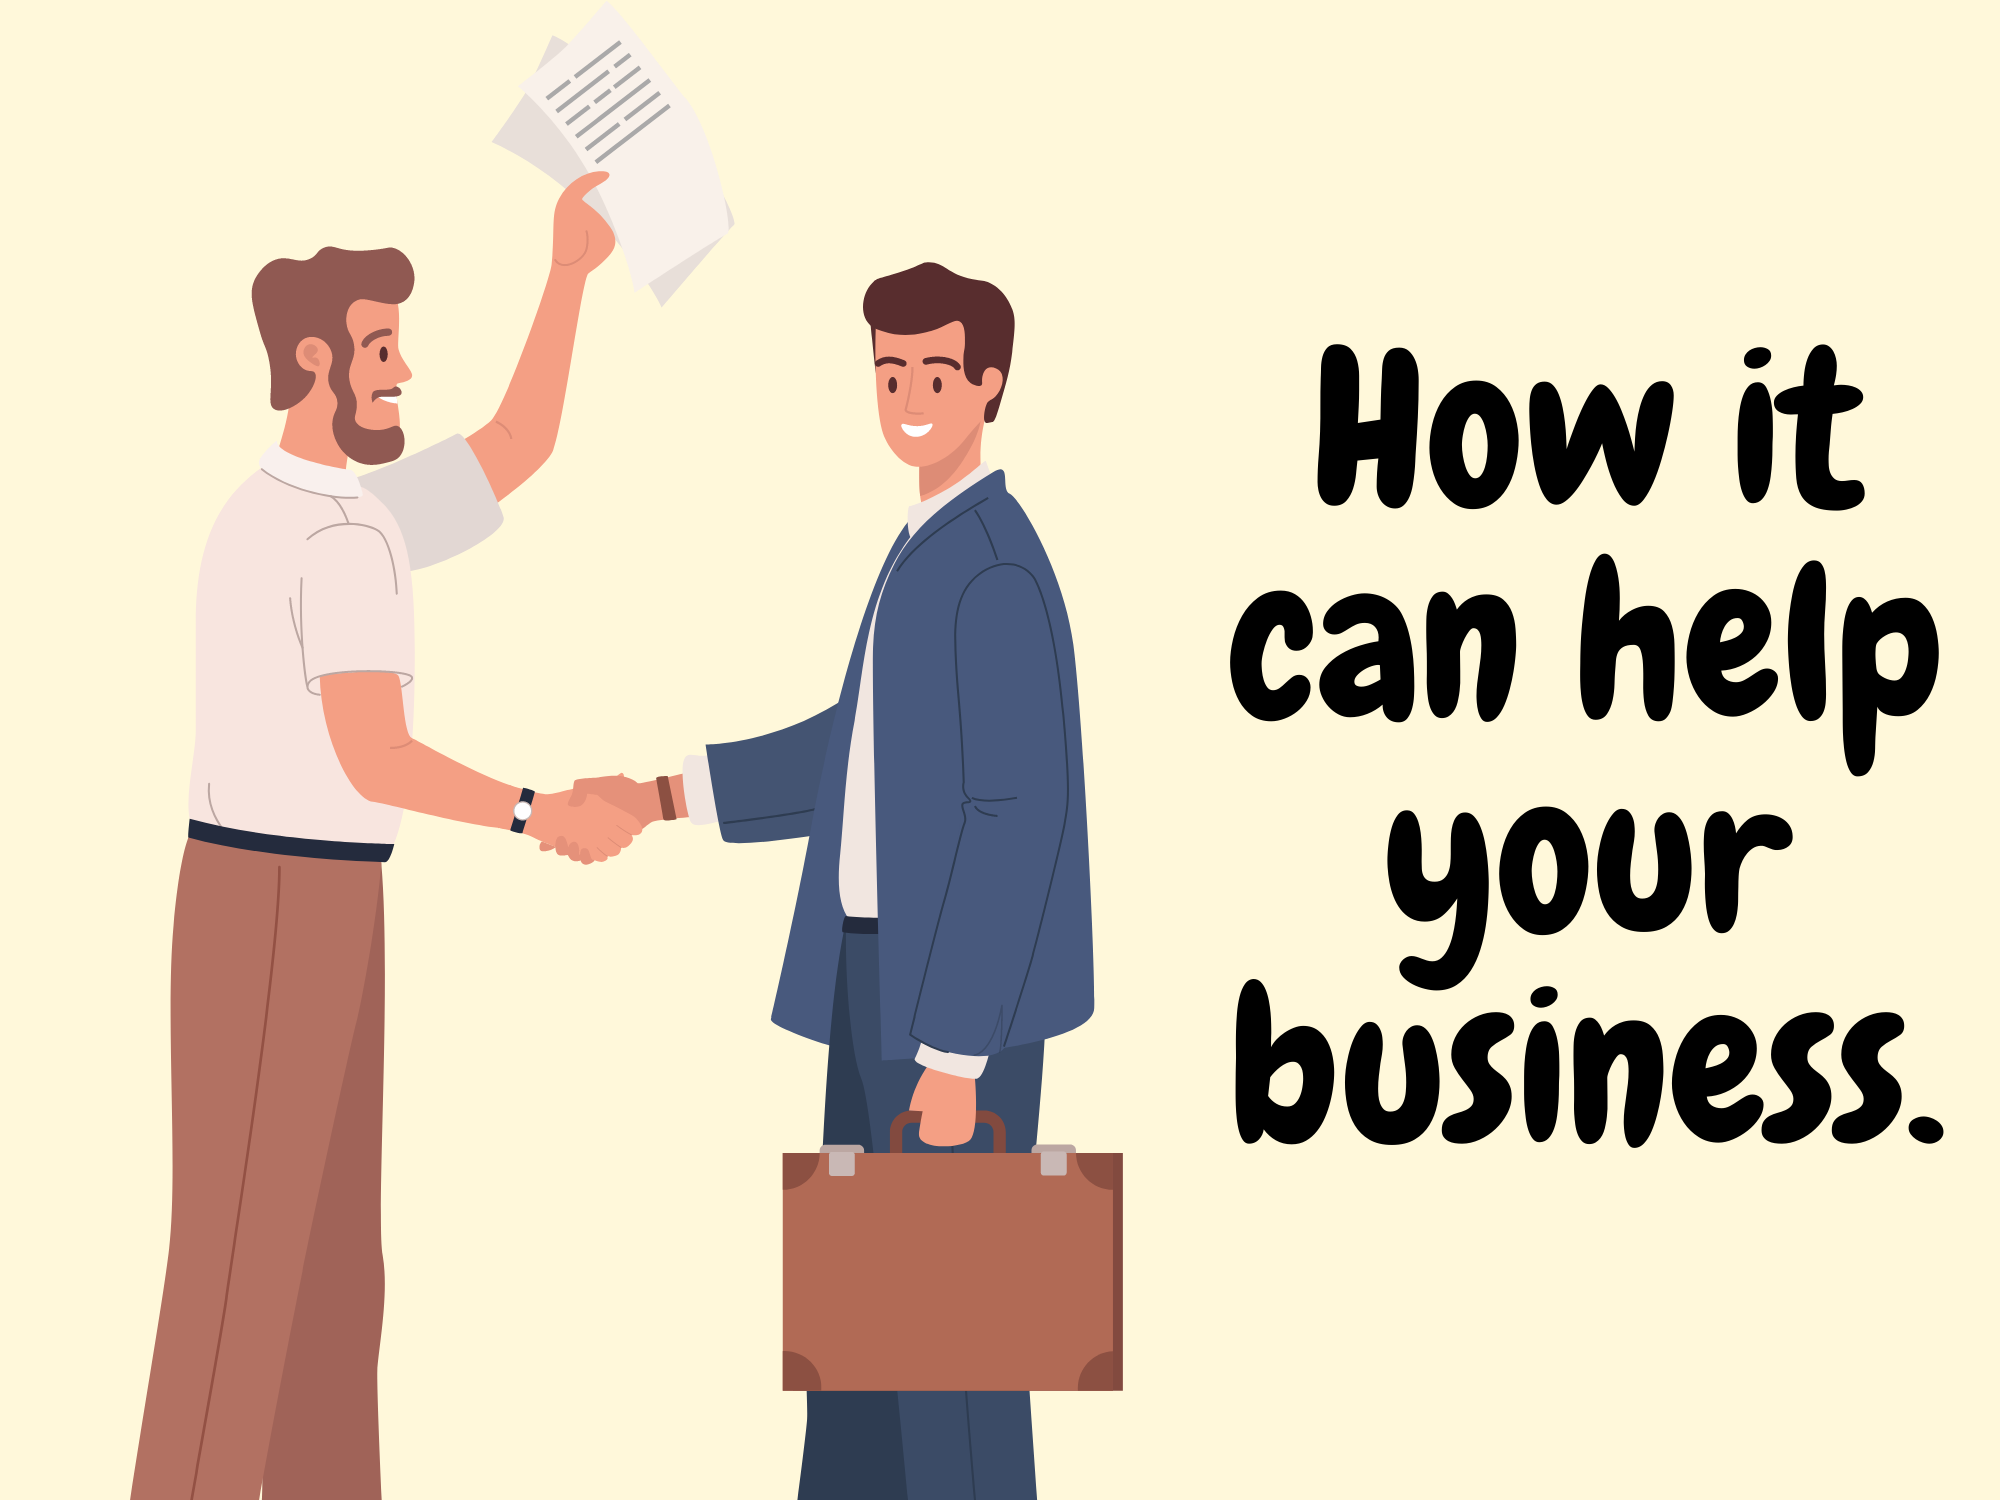 How-it-can-help-your-business